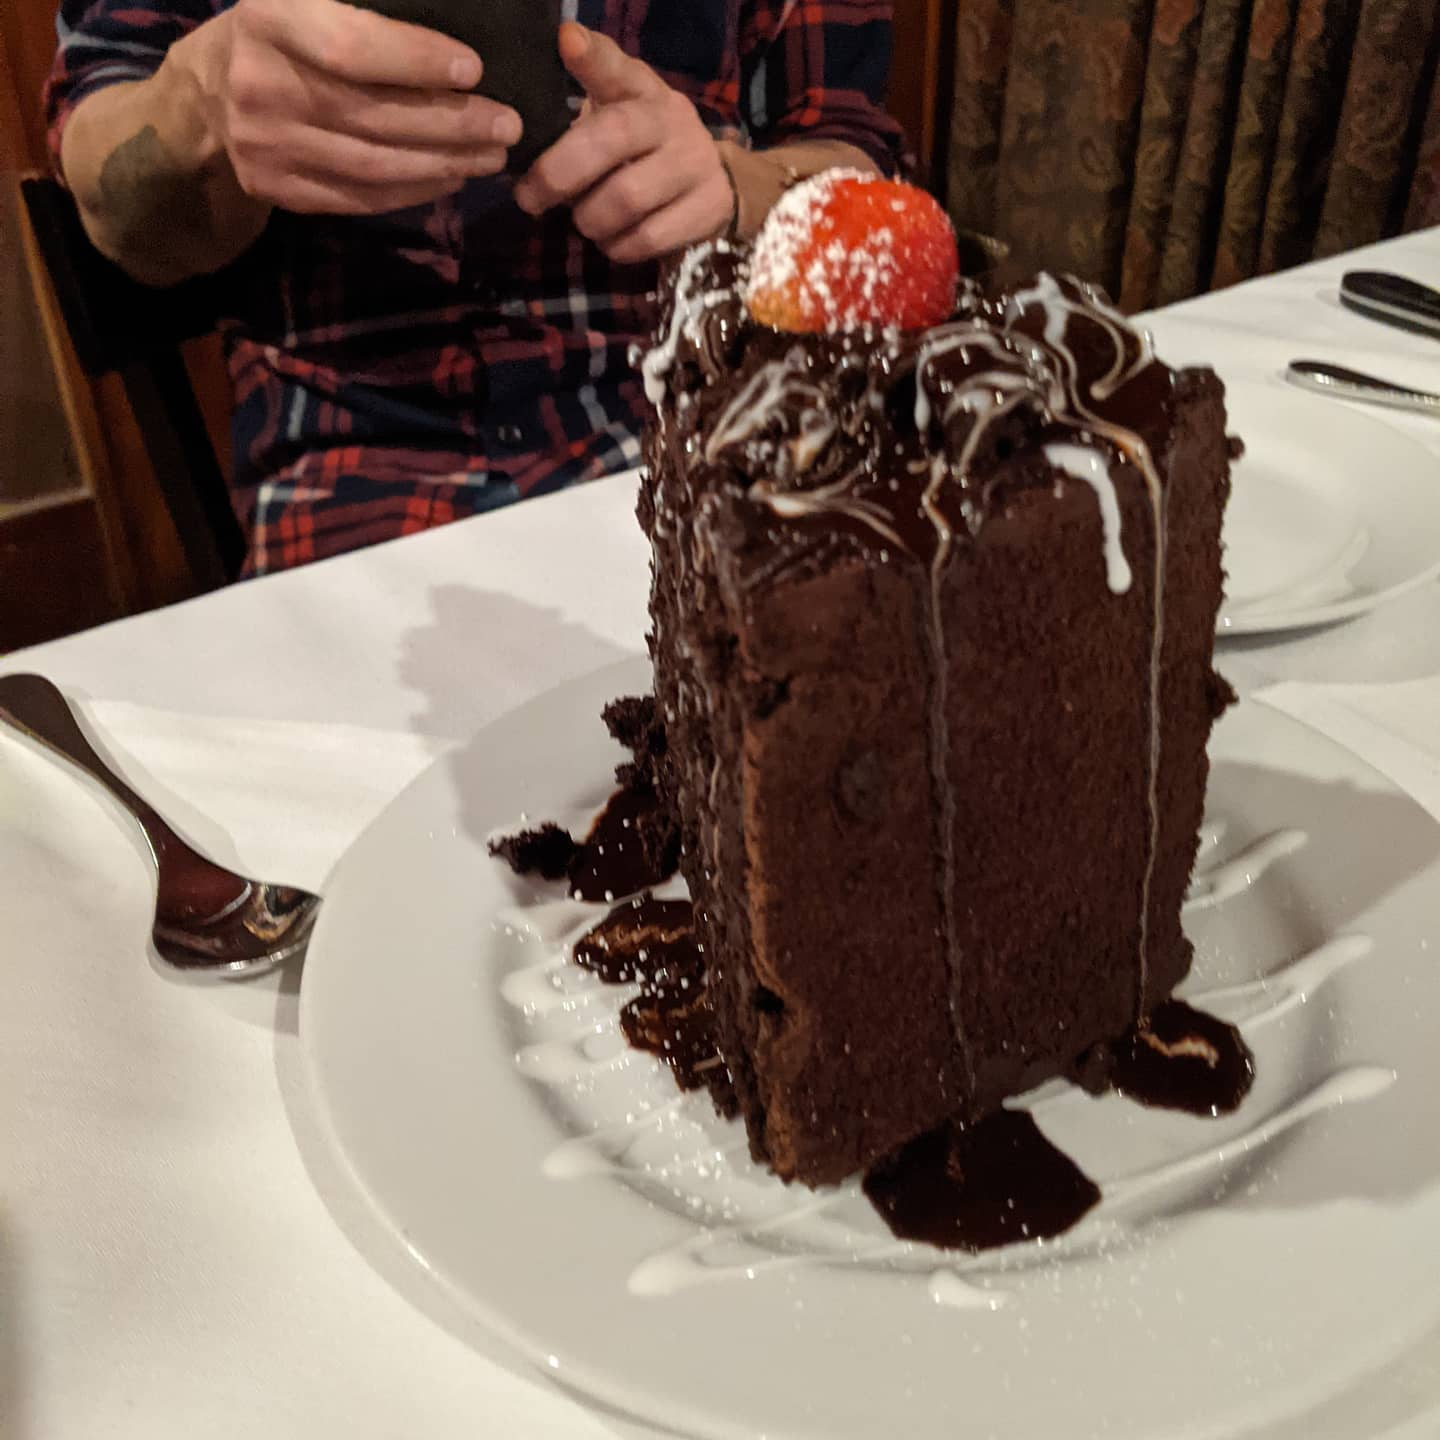 """And this is what you get in when you fail to notice that the menu specifies that the chocolate cake is """"sharing size"""". #okc #foodporn"""